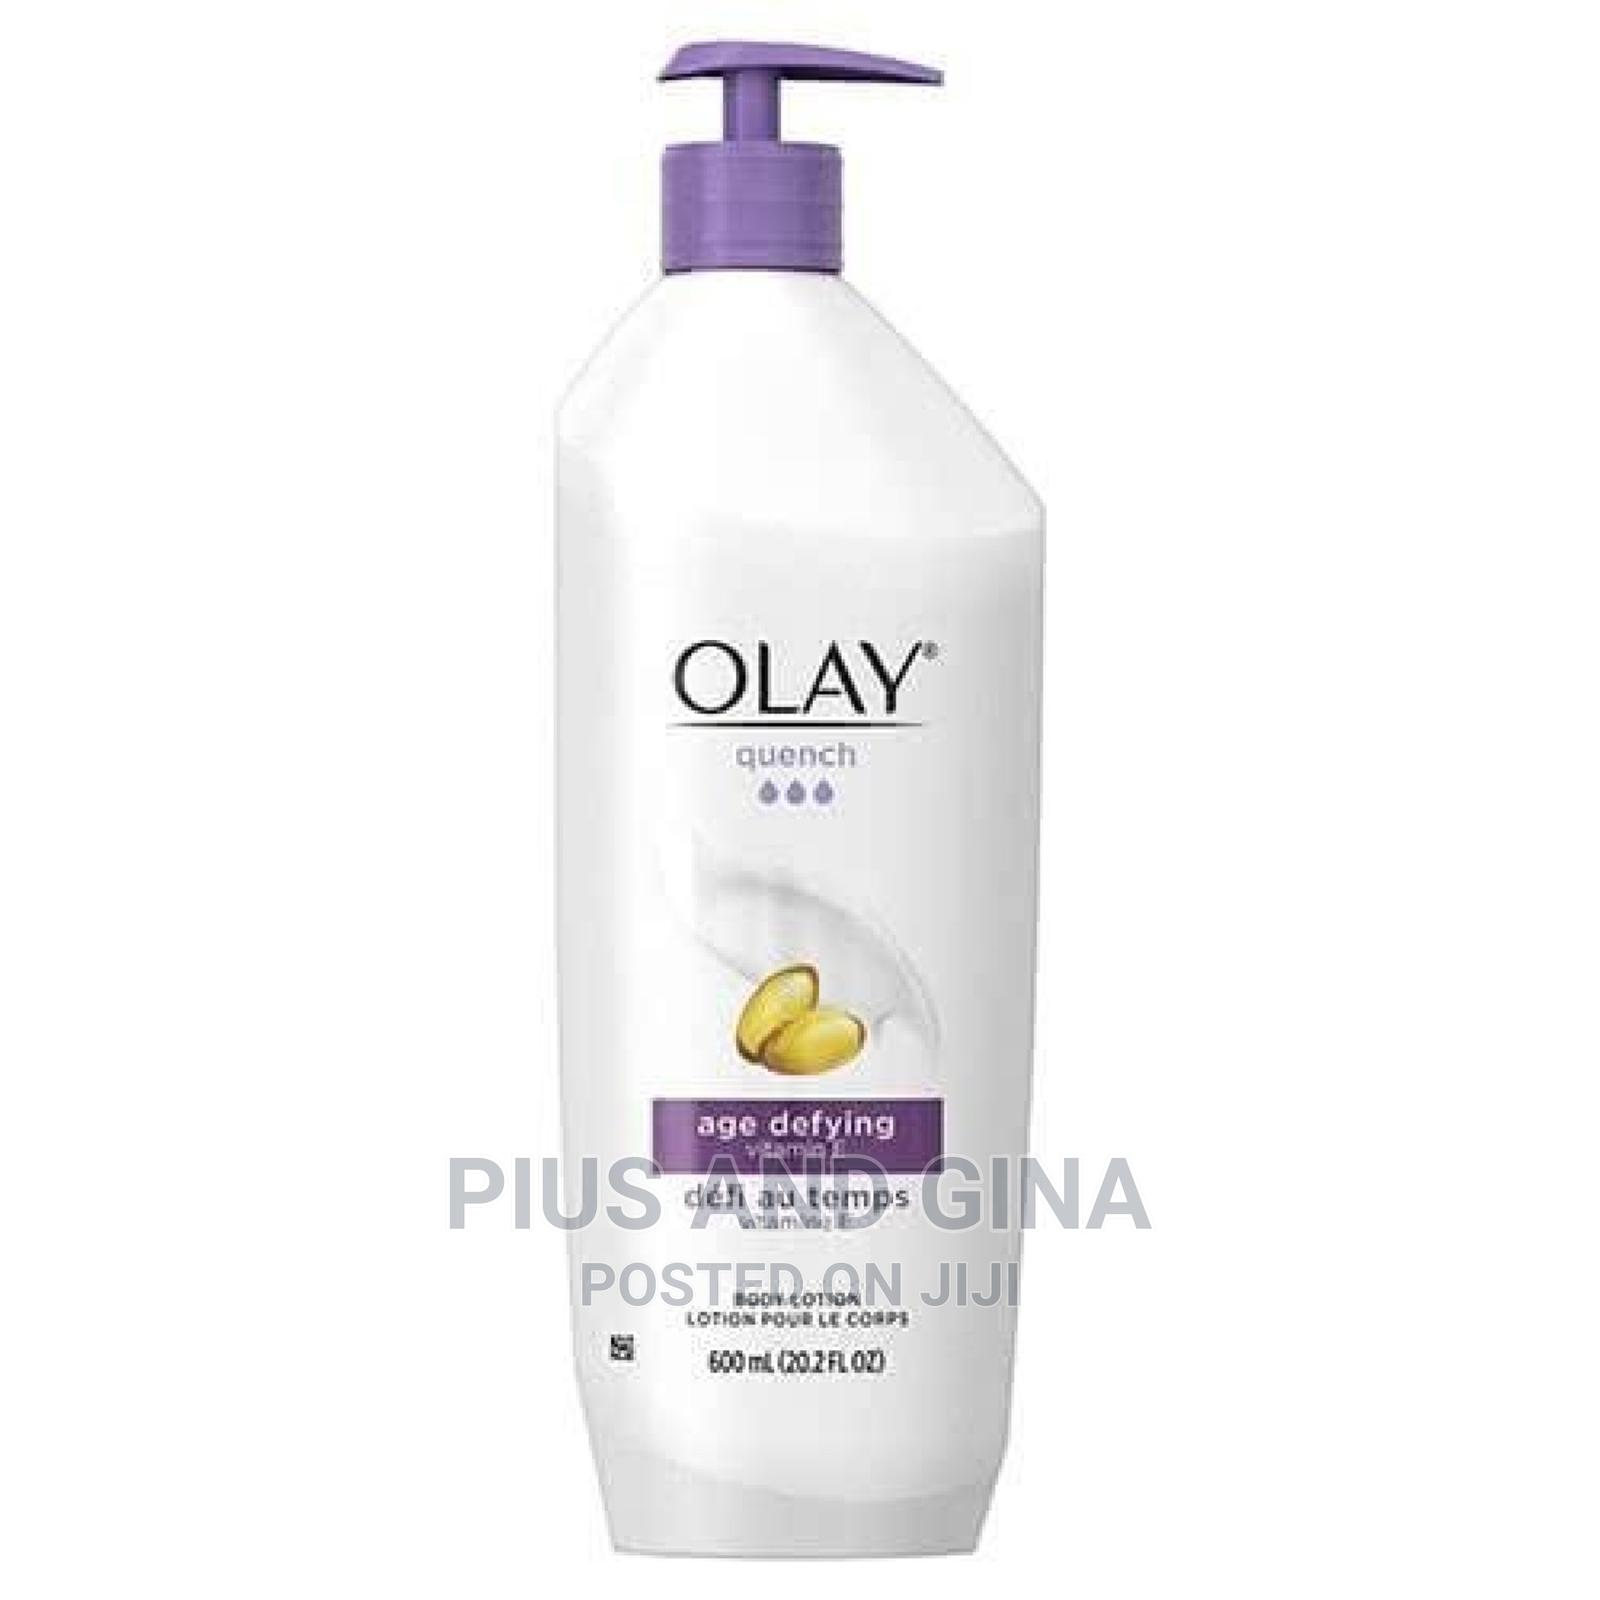 Olay Quench Age Defying Body Lotion With Vitamin E- 600ml(LA